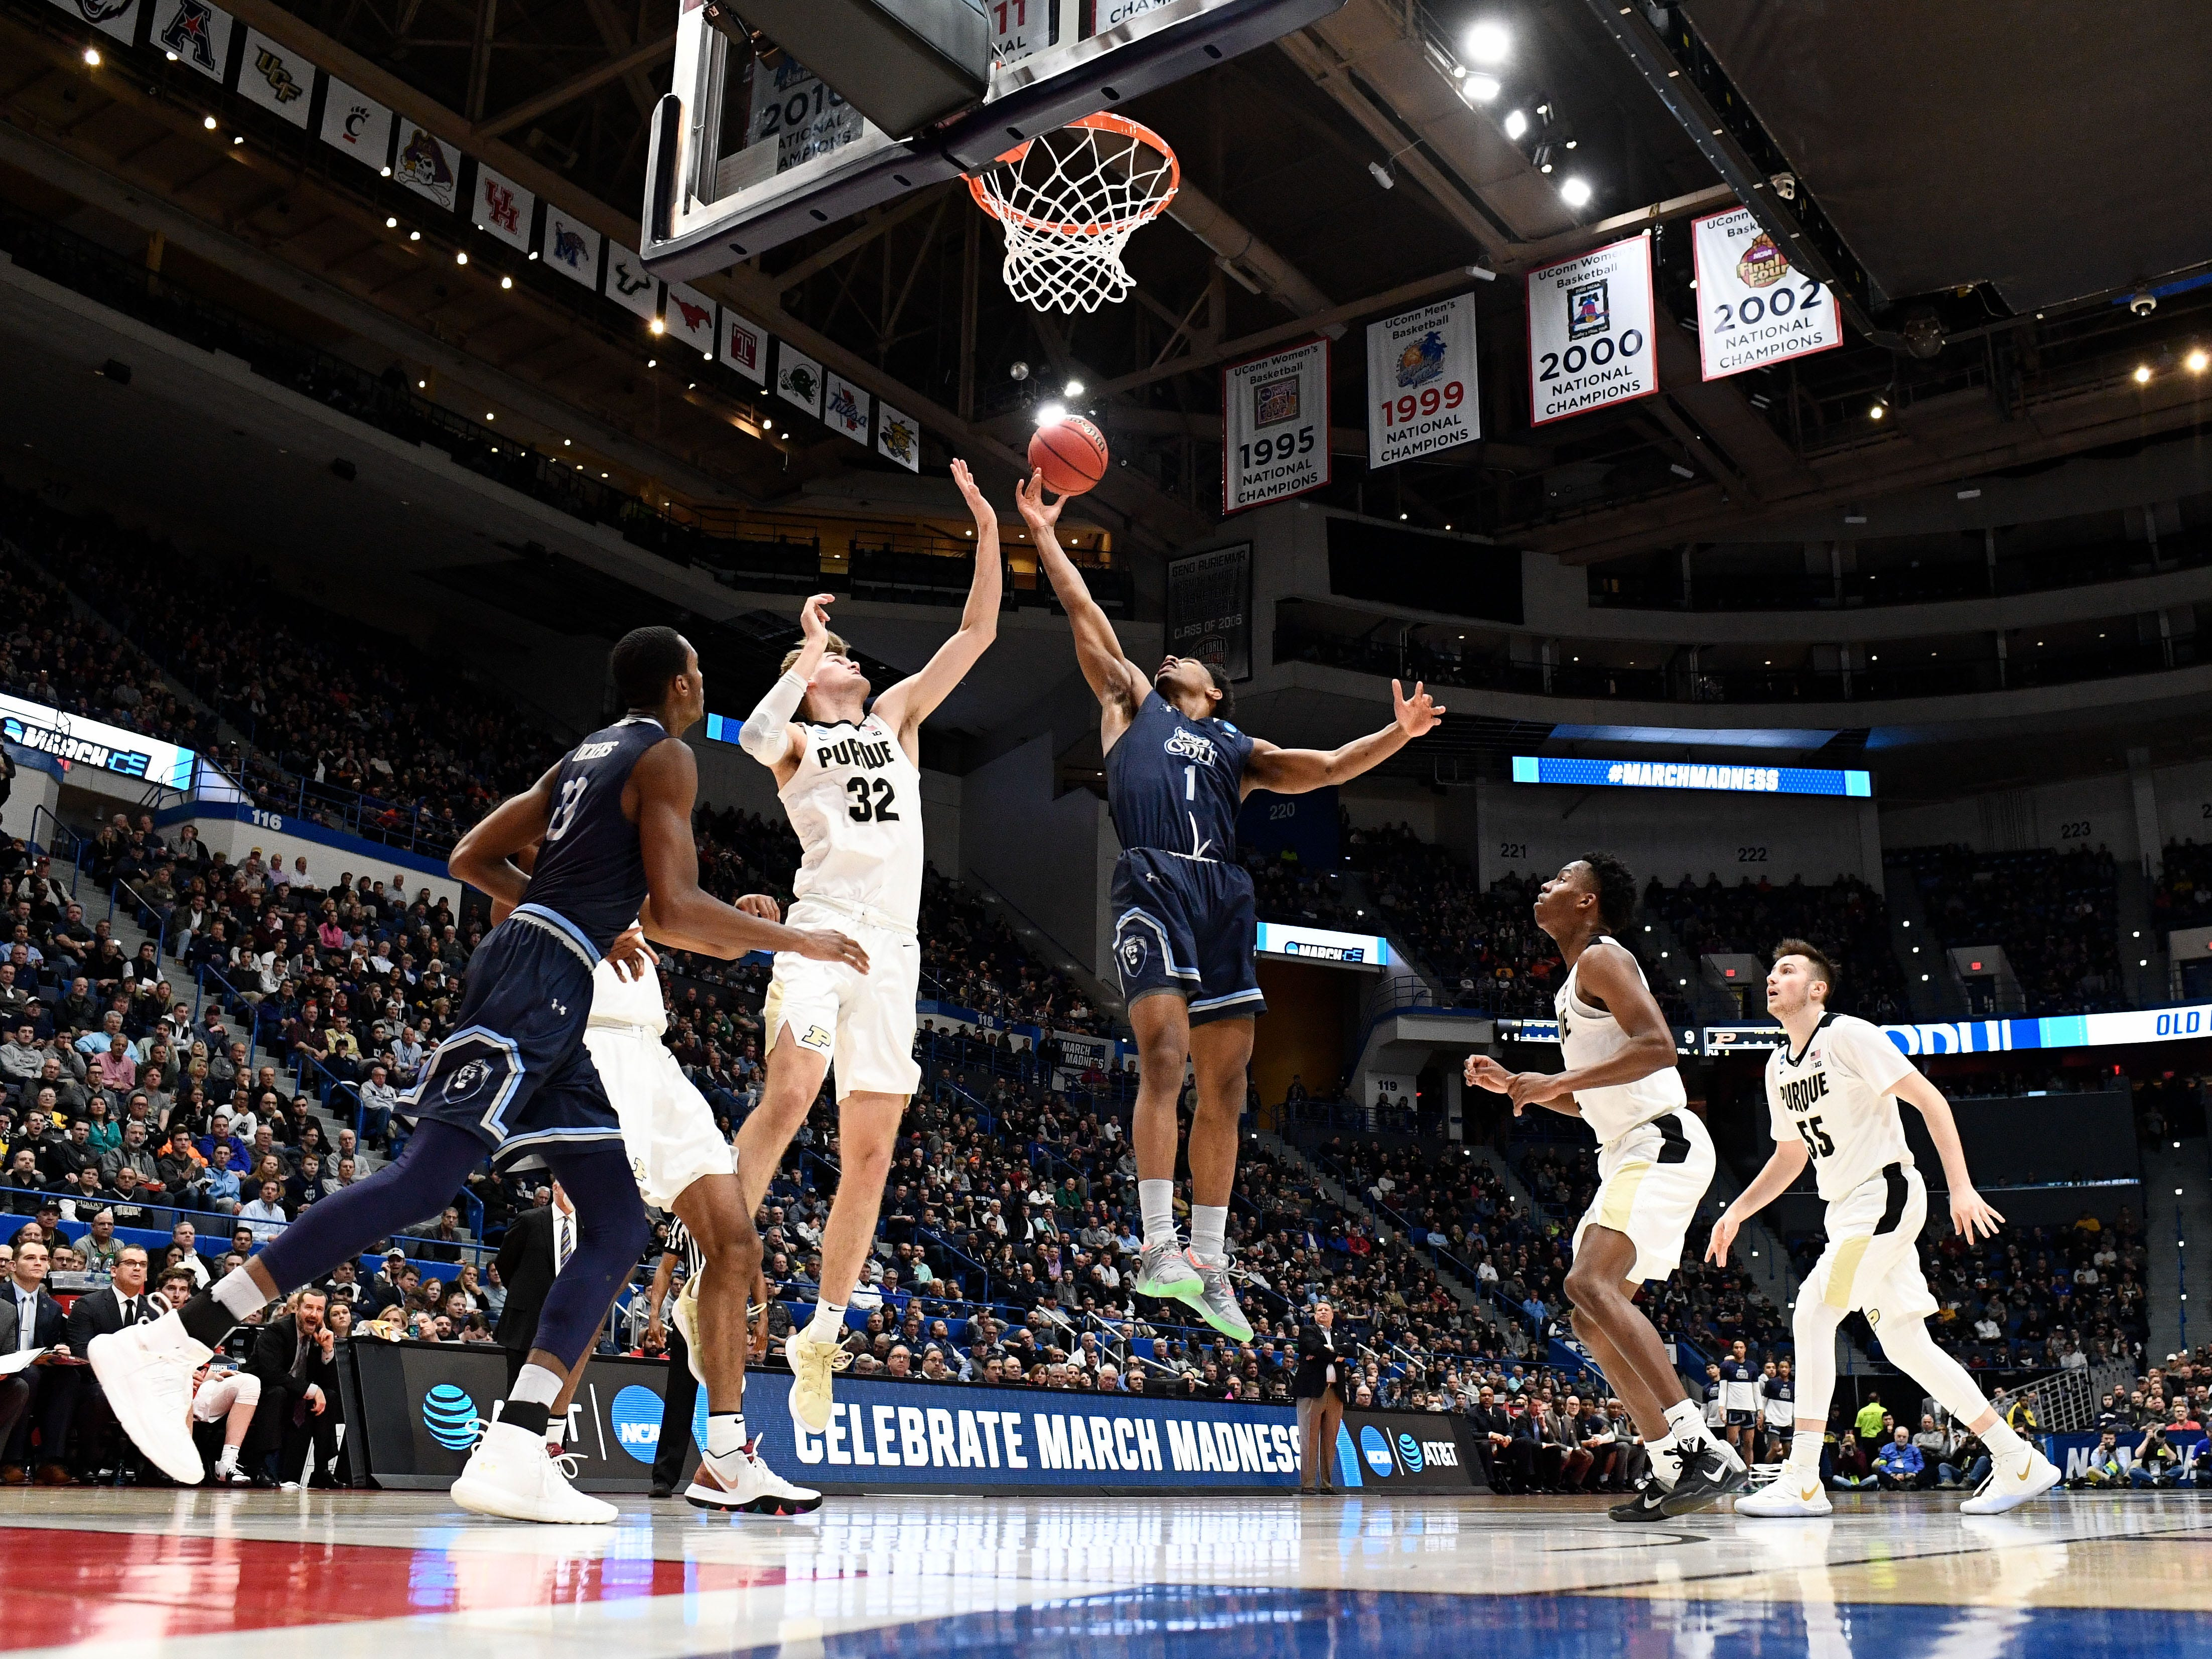 Mar 21, 2019; Hartford, CT, USA; Old Dominion Monarchs guard Jason Wade (1) and Purdue Boilermakers center Matt Haarms (32) reach for a rebound during the first half of a game in the first round of the 2019 NCAA Tournament at XL Center. Mandatory Credit: Robert Deutsch-USA TODAY Sports